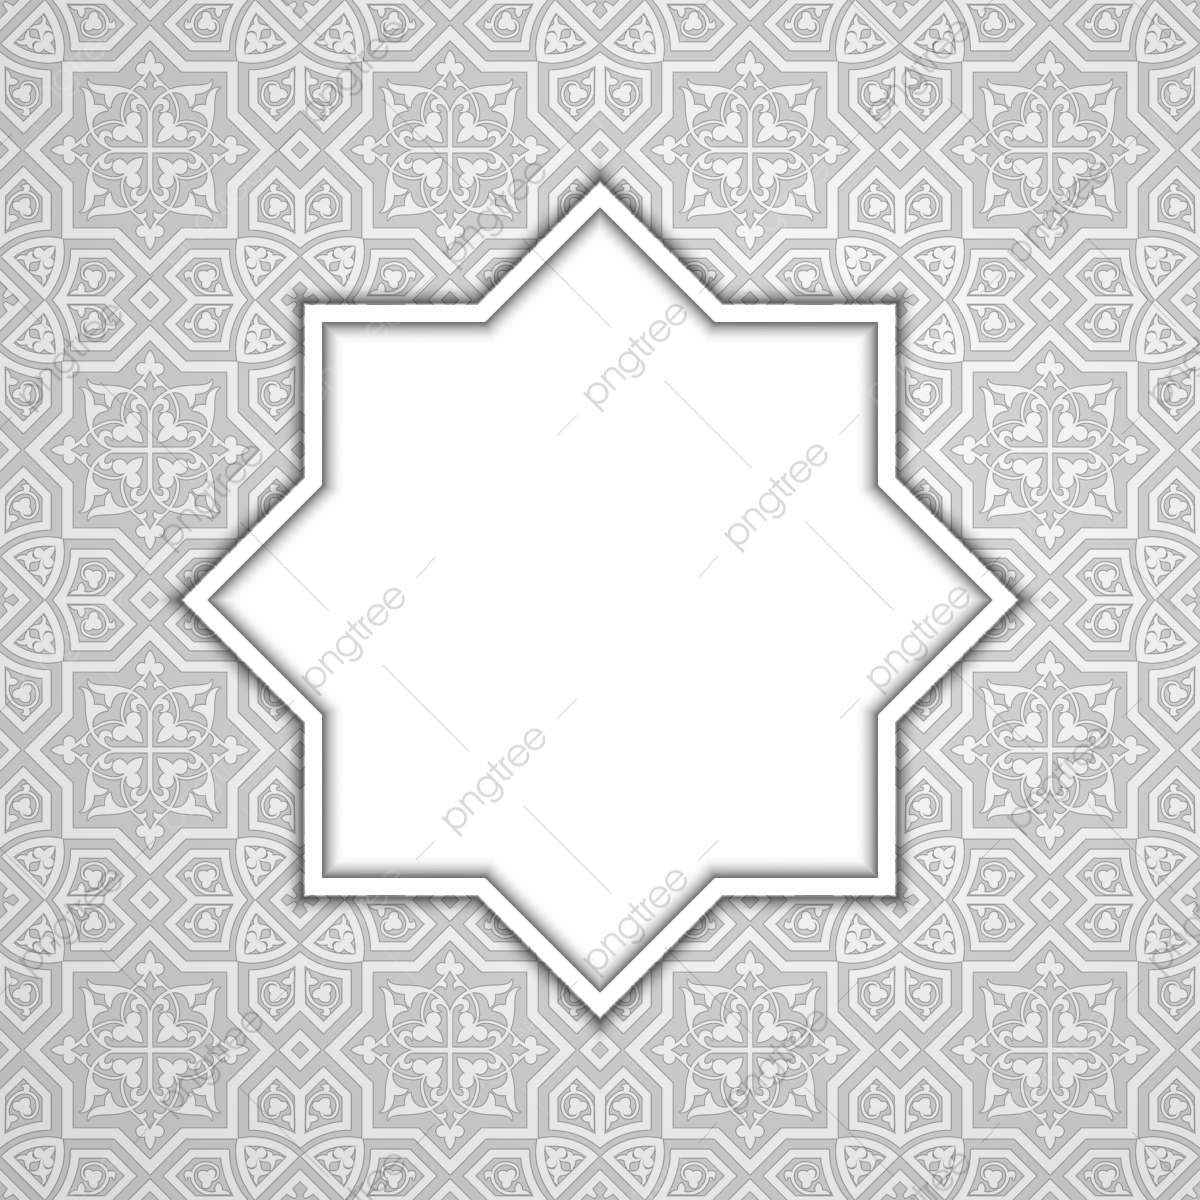 islamic ornaments png images vector and psd files free download on pngtree https pngtree com freepng islamic ornament vector traditional arabic art islamic geometric circular ornamental for fabric textile cover wrapping paper abstract vector background 5307690 html